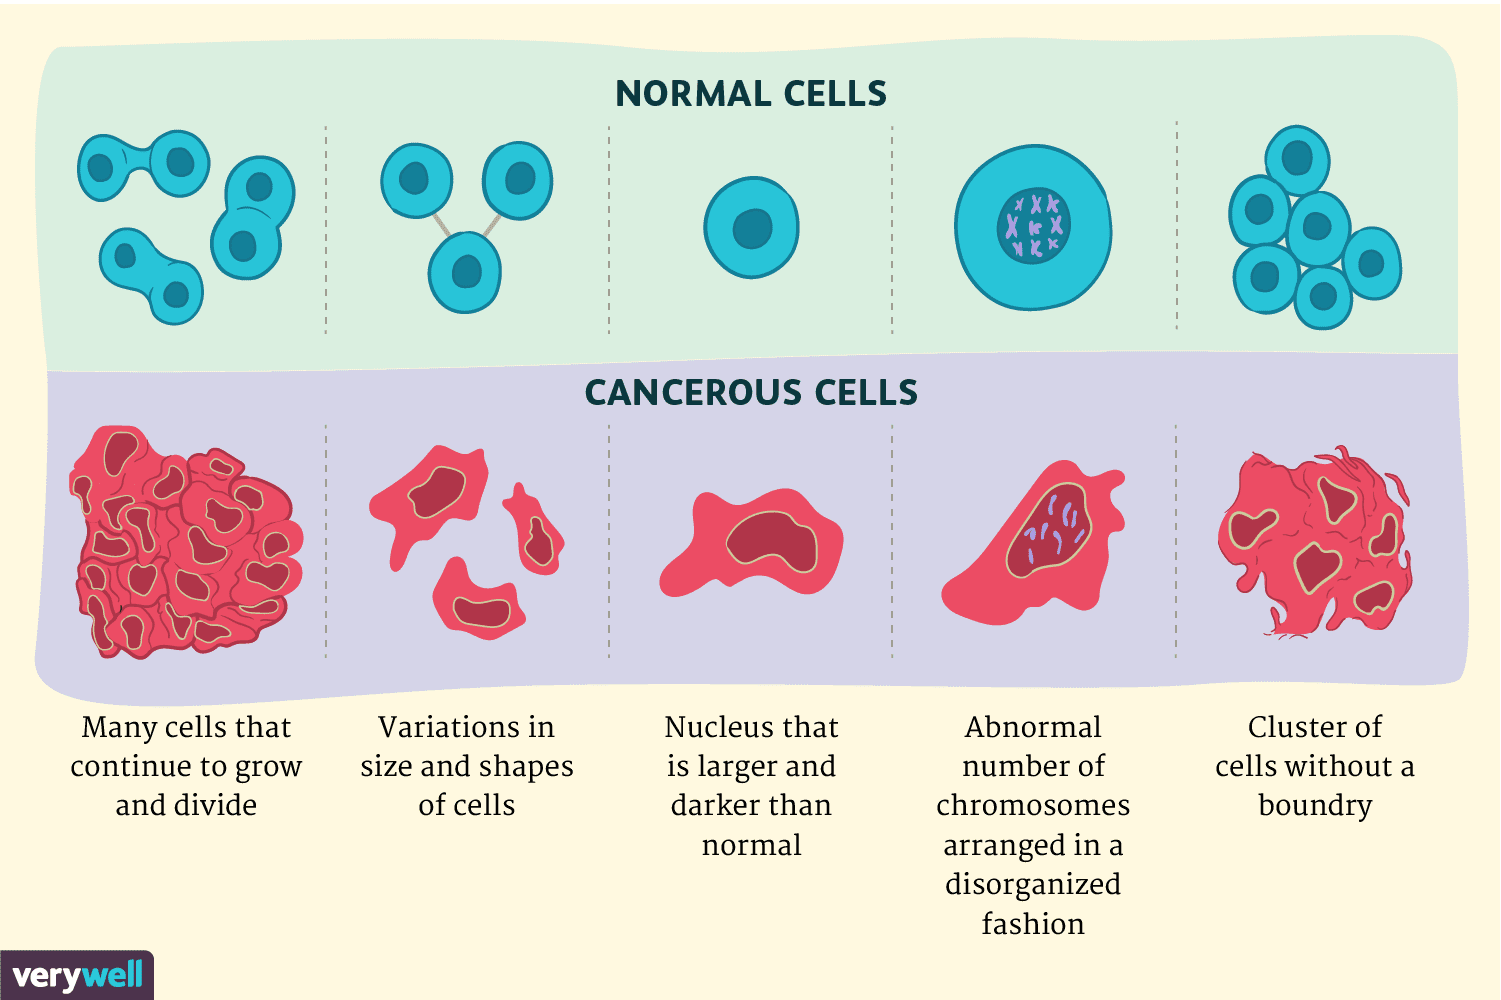 cancer cells vs. normal cells: how are they different?